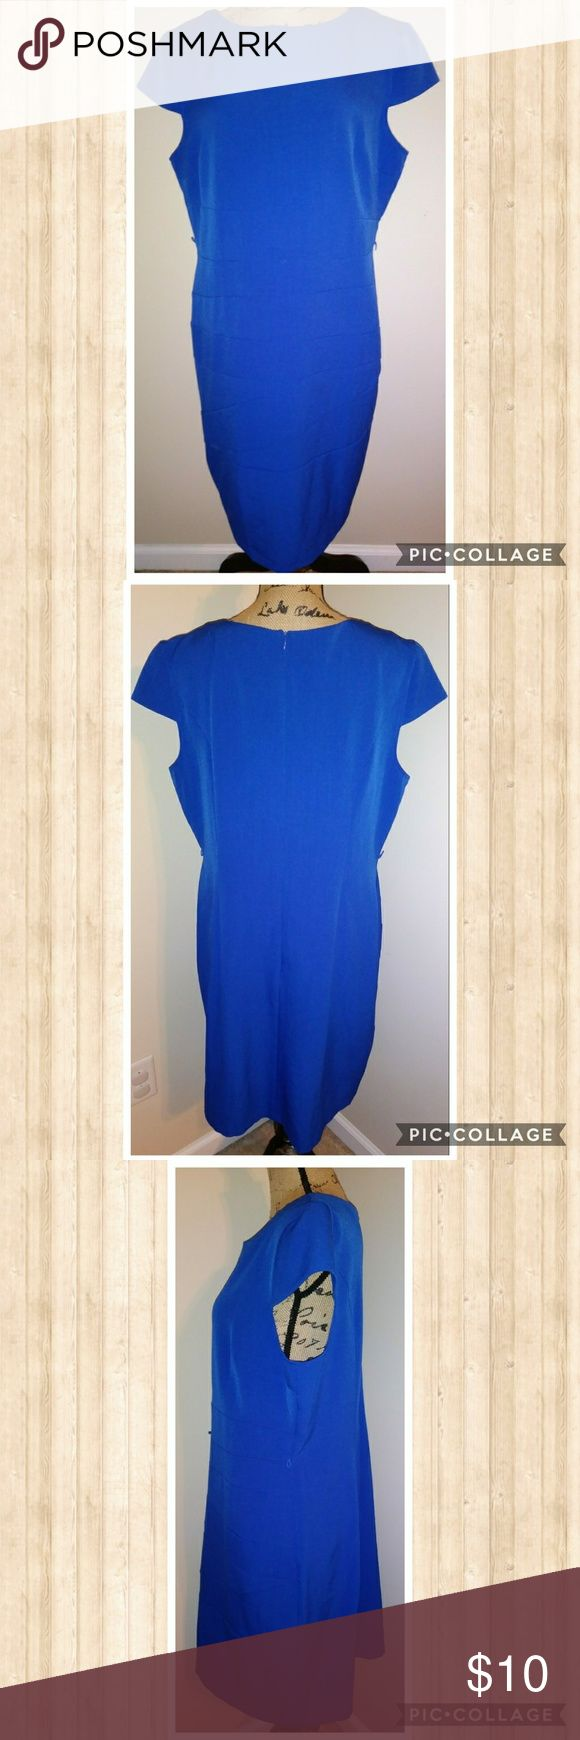 "Alyx Colbalt Blue Dress -- Size 18 Brand: Alyx Dress Size: 18 Length: 36"" Bust: 22""   Waist: 19"" Sleeve Opening: 9"" Hip: 21-22"" Hem: 24"" Description: Bright and cheery blue dress that can be worn for work or play! Material: 94% polyester 6% spandex Condition: EUC -- is missing a belt/sash but no other noticeable flaws! *smoke free, pet friendly home*ships out same or next day* Alyx Dresses"